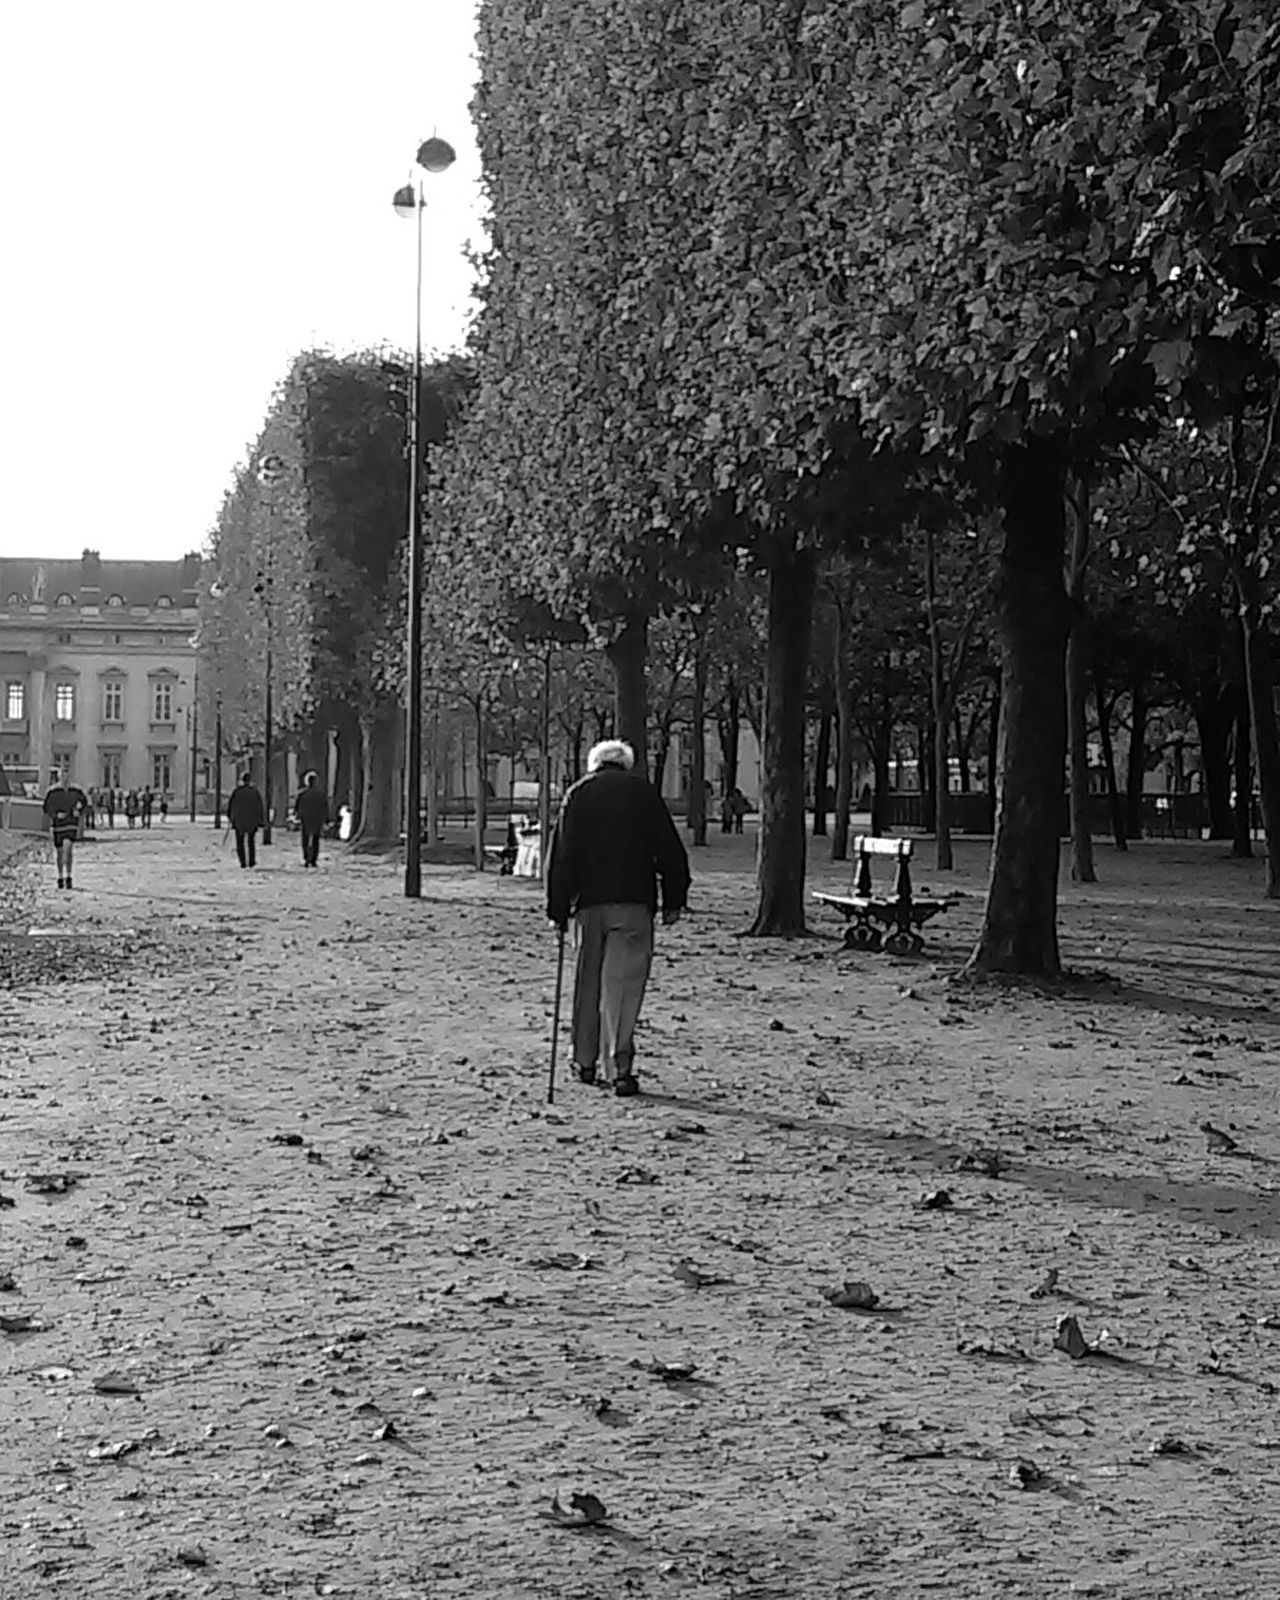 Alone I walk this earth... Photowalking Paris Streetphoto_bw Eyeem Philippines Street Photography Blackandwhite Bw_ Collection Authentic Moments RePicture Ageing The Human Condition RePicture Travel Feel The Journey